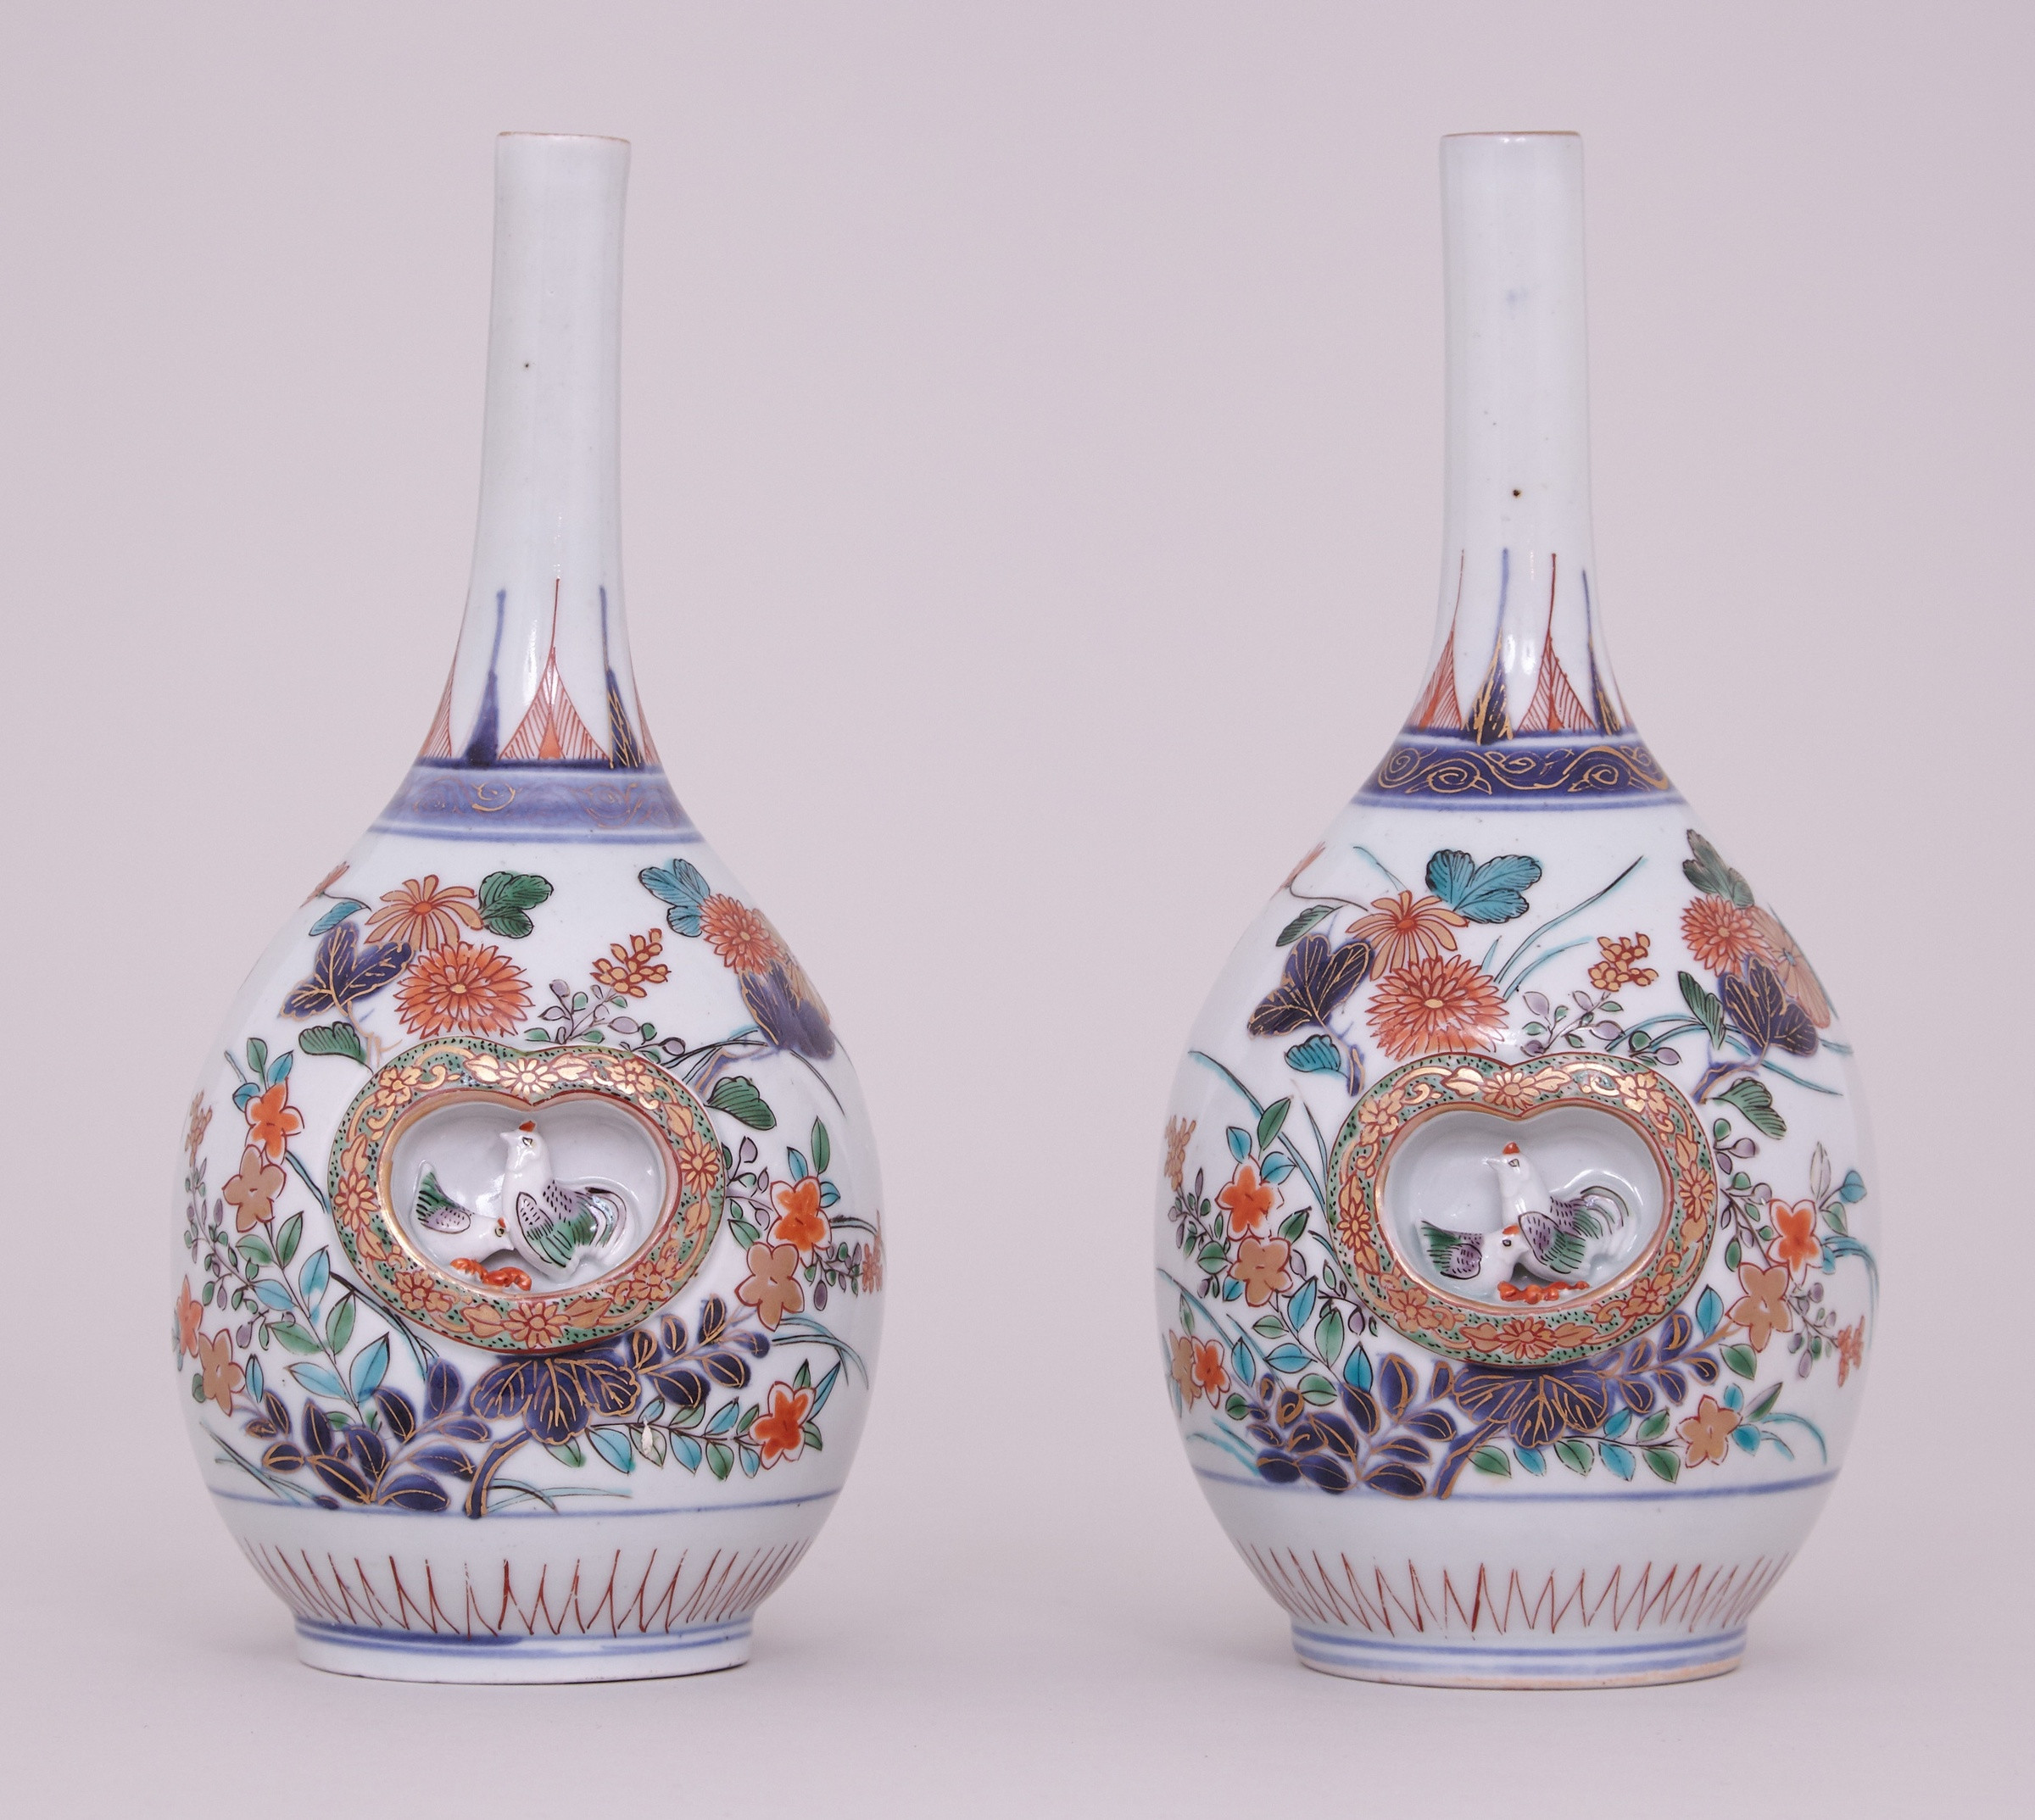 porcelain vase china of a pair of fine japanese imari bottle vases late 17th early 18th pertaining to a pair of fine japanese imari bottle vases